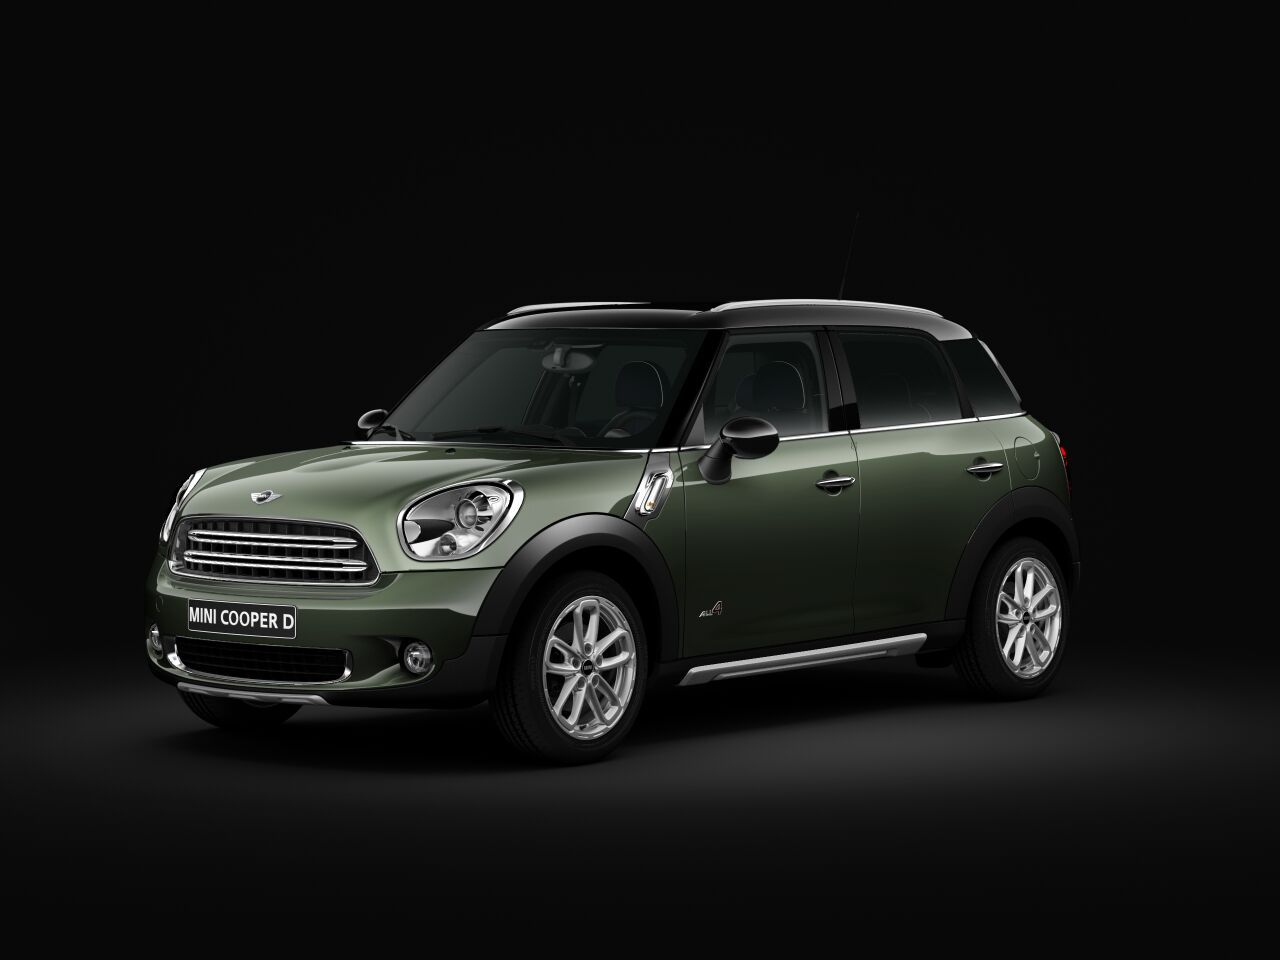 MINI Countryman large side view